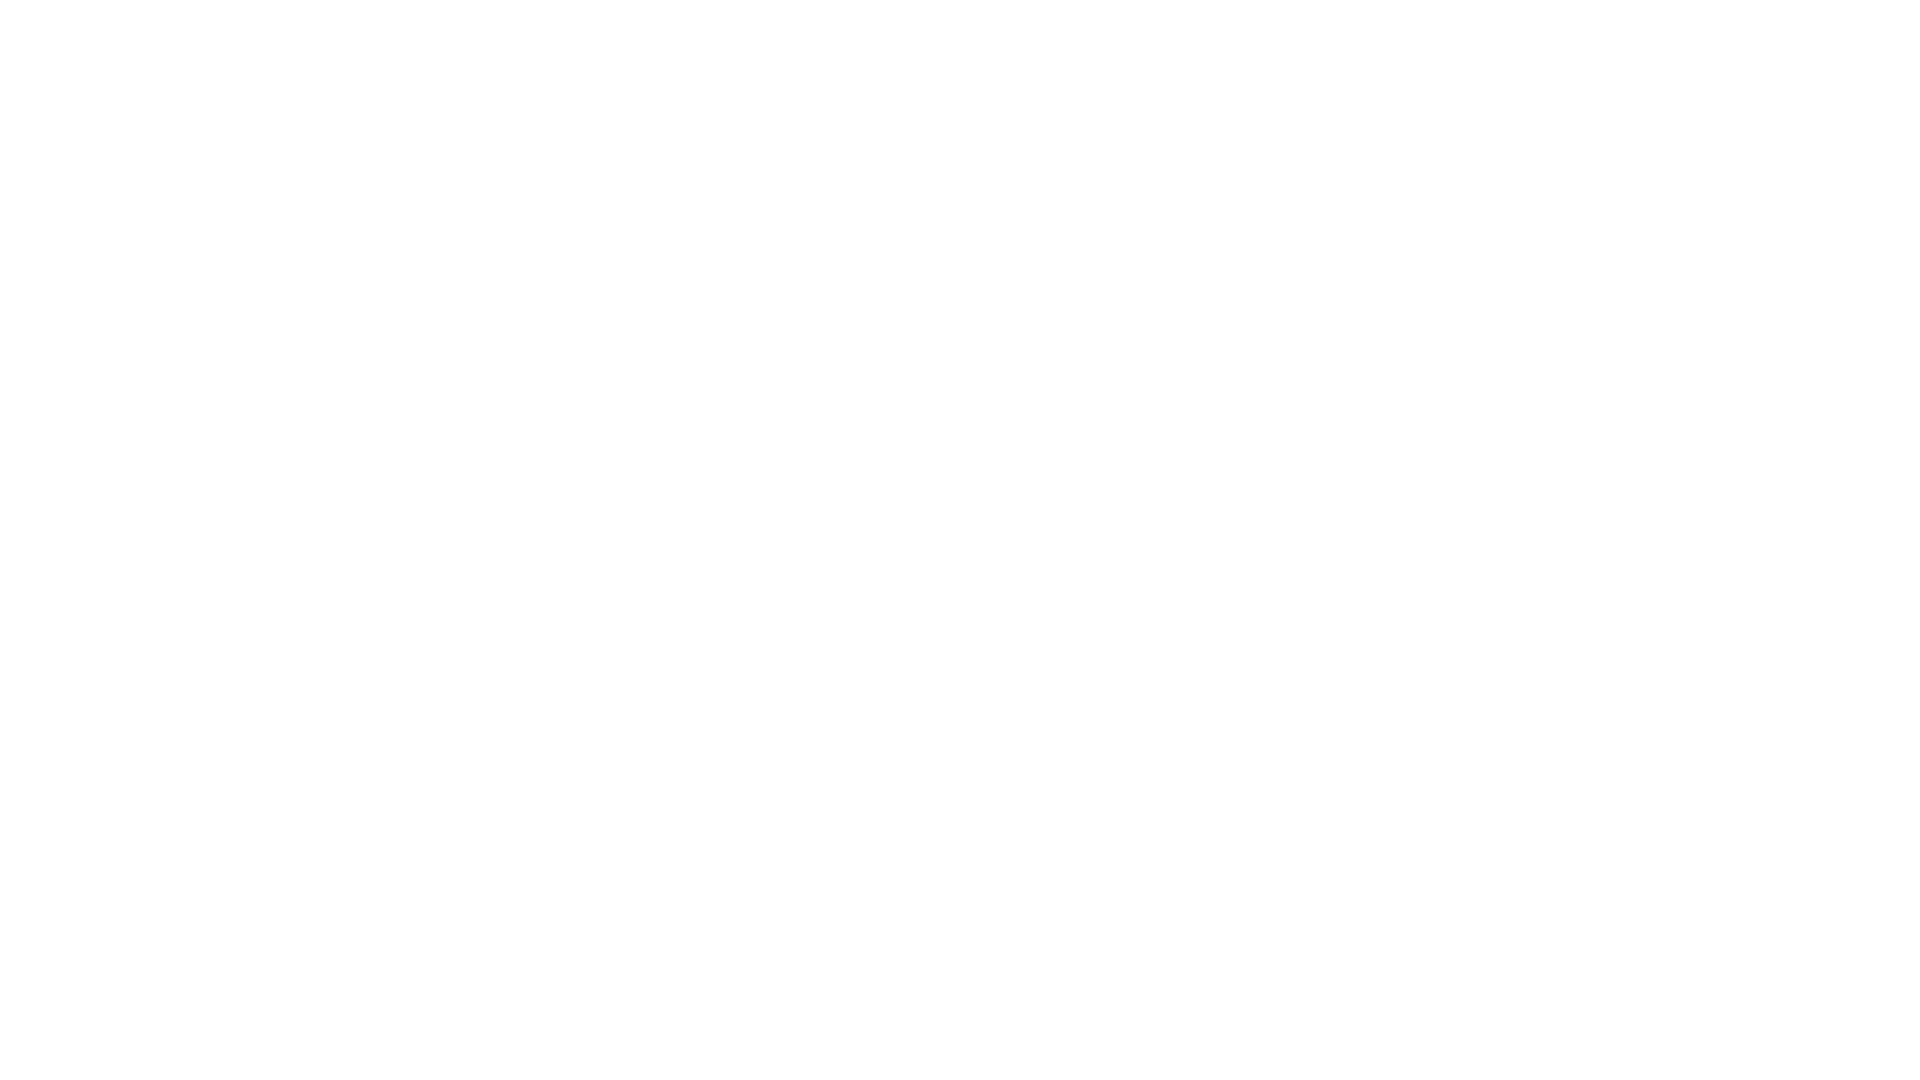 Star Wars: Revenge of the Sith (Episode III)